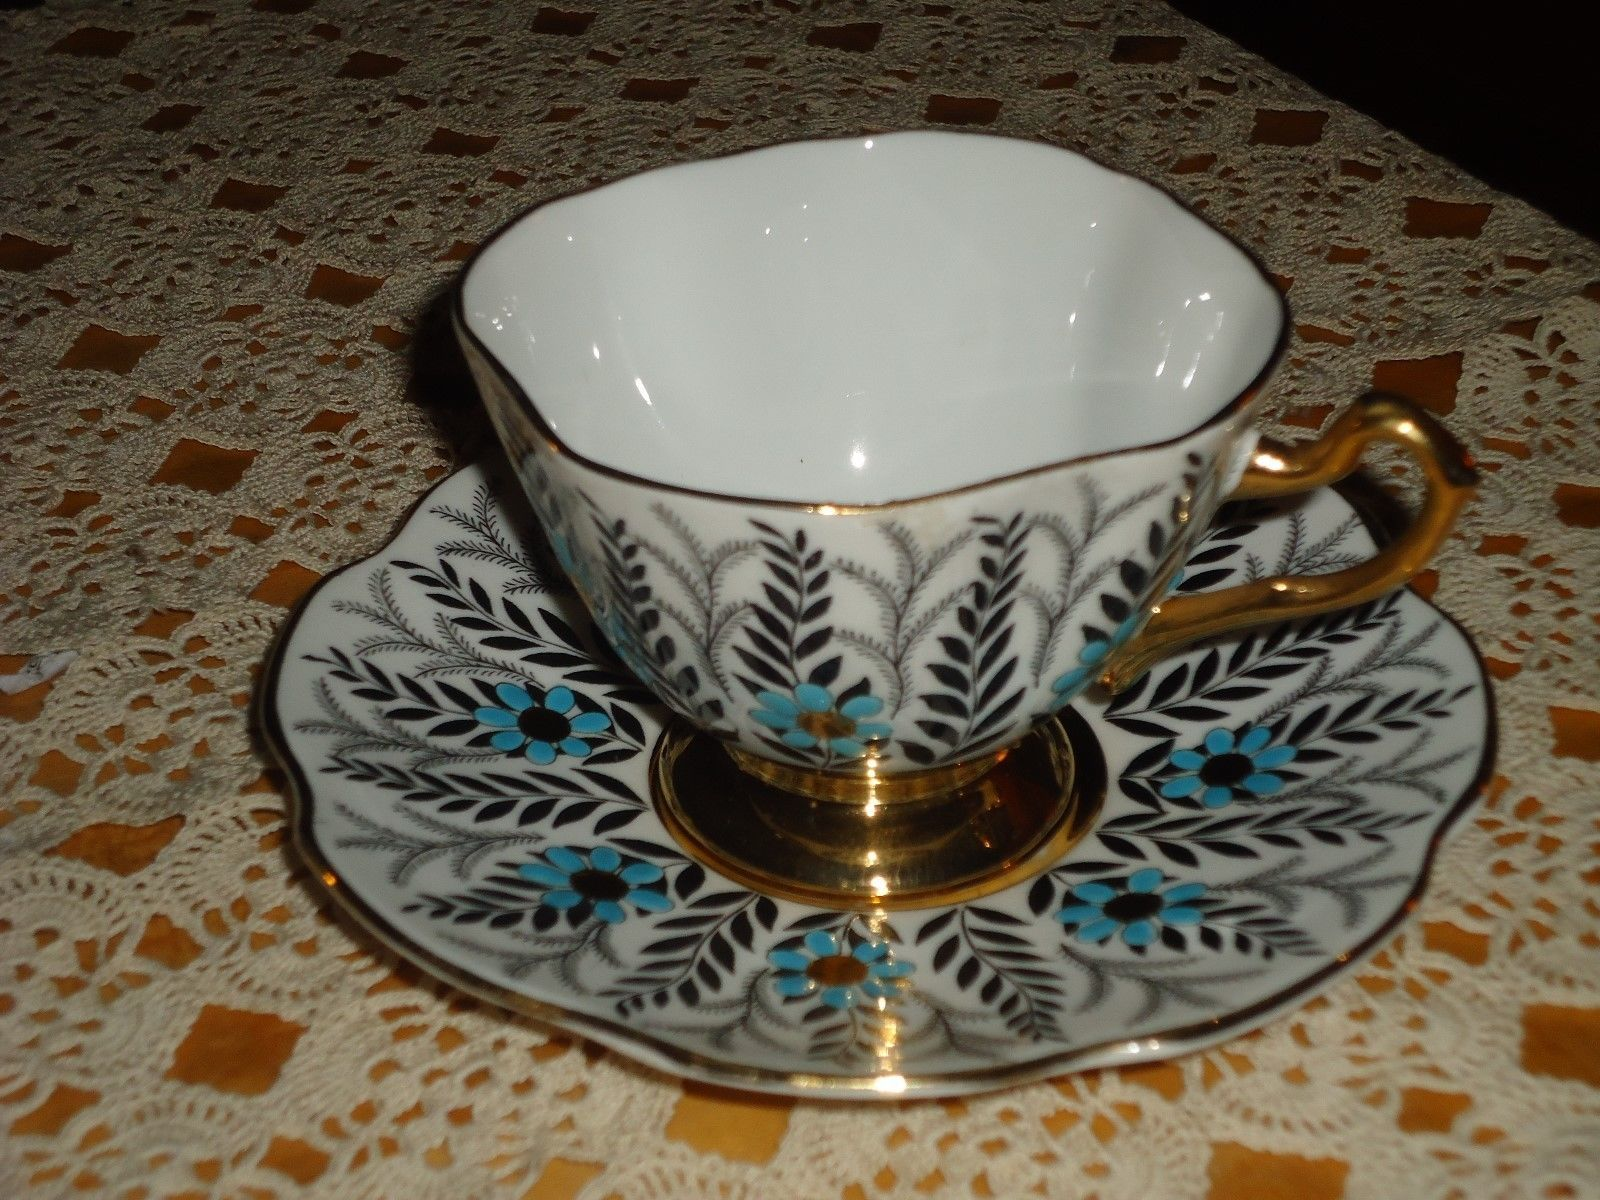 Primary image for Rosina China England Tea Cup and Saucer Pattern #5197 Turquoise Accents